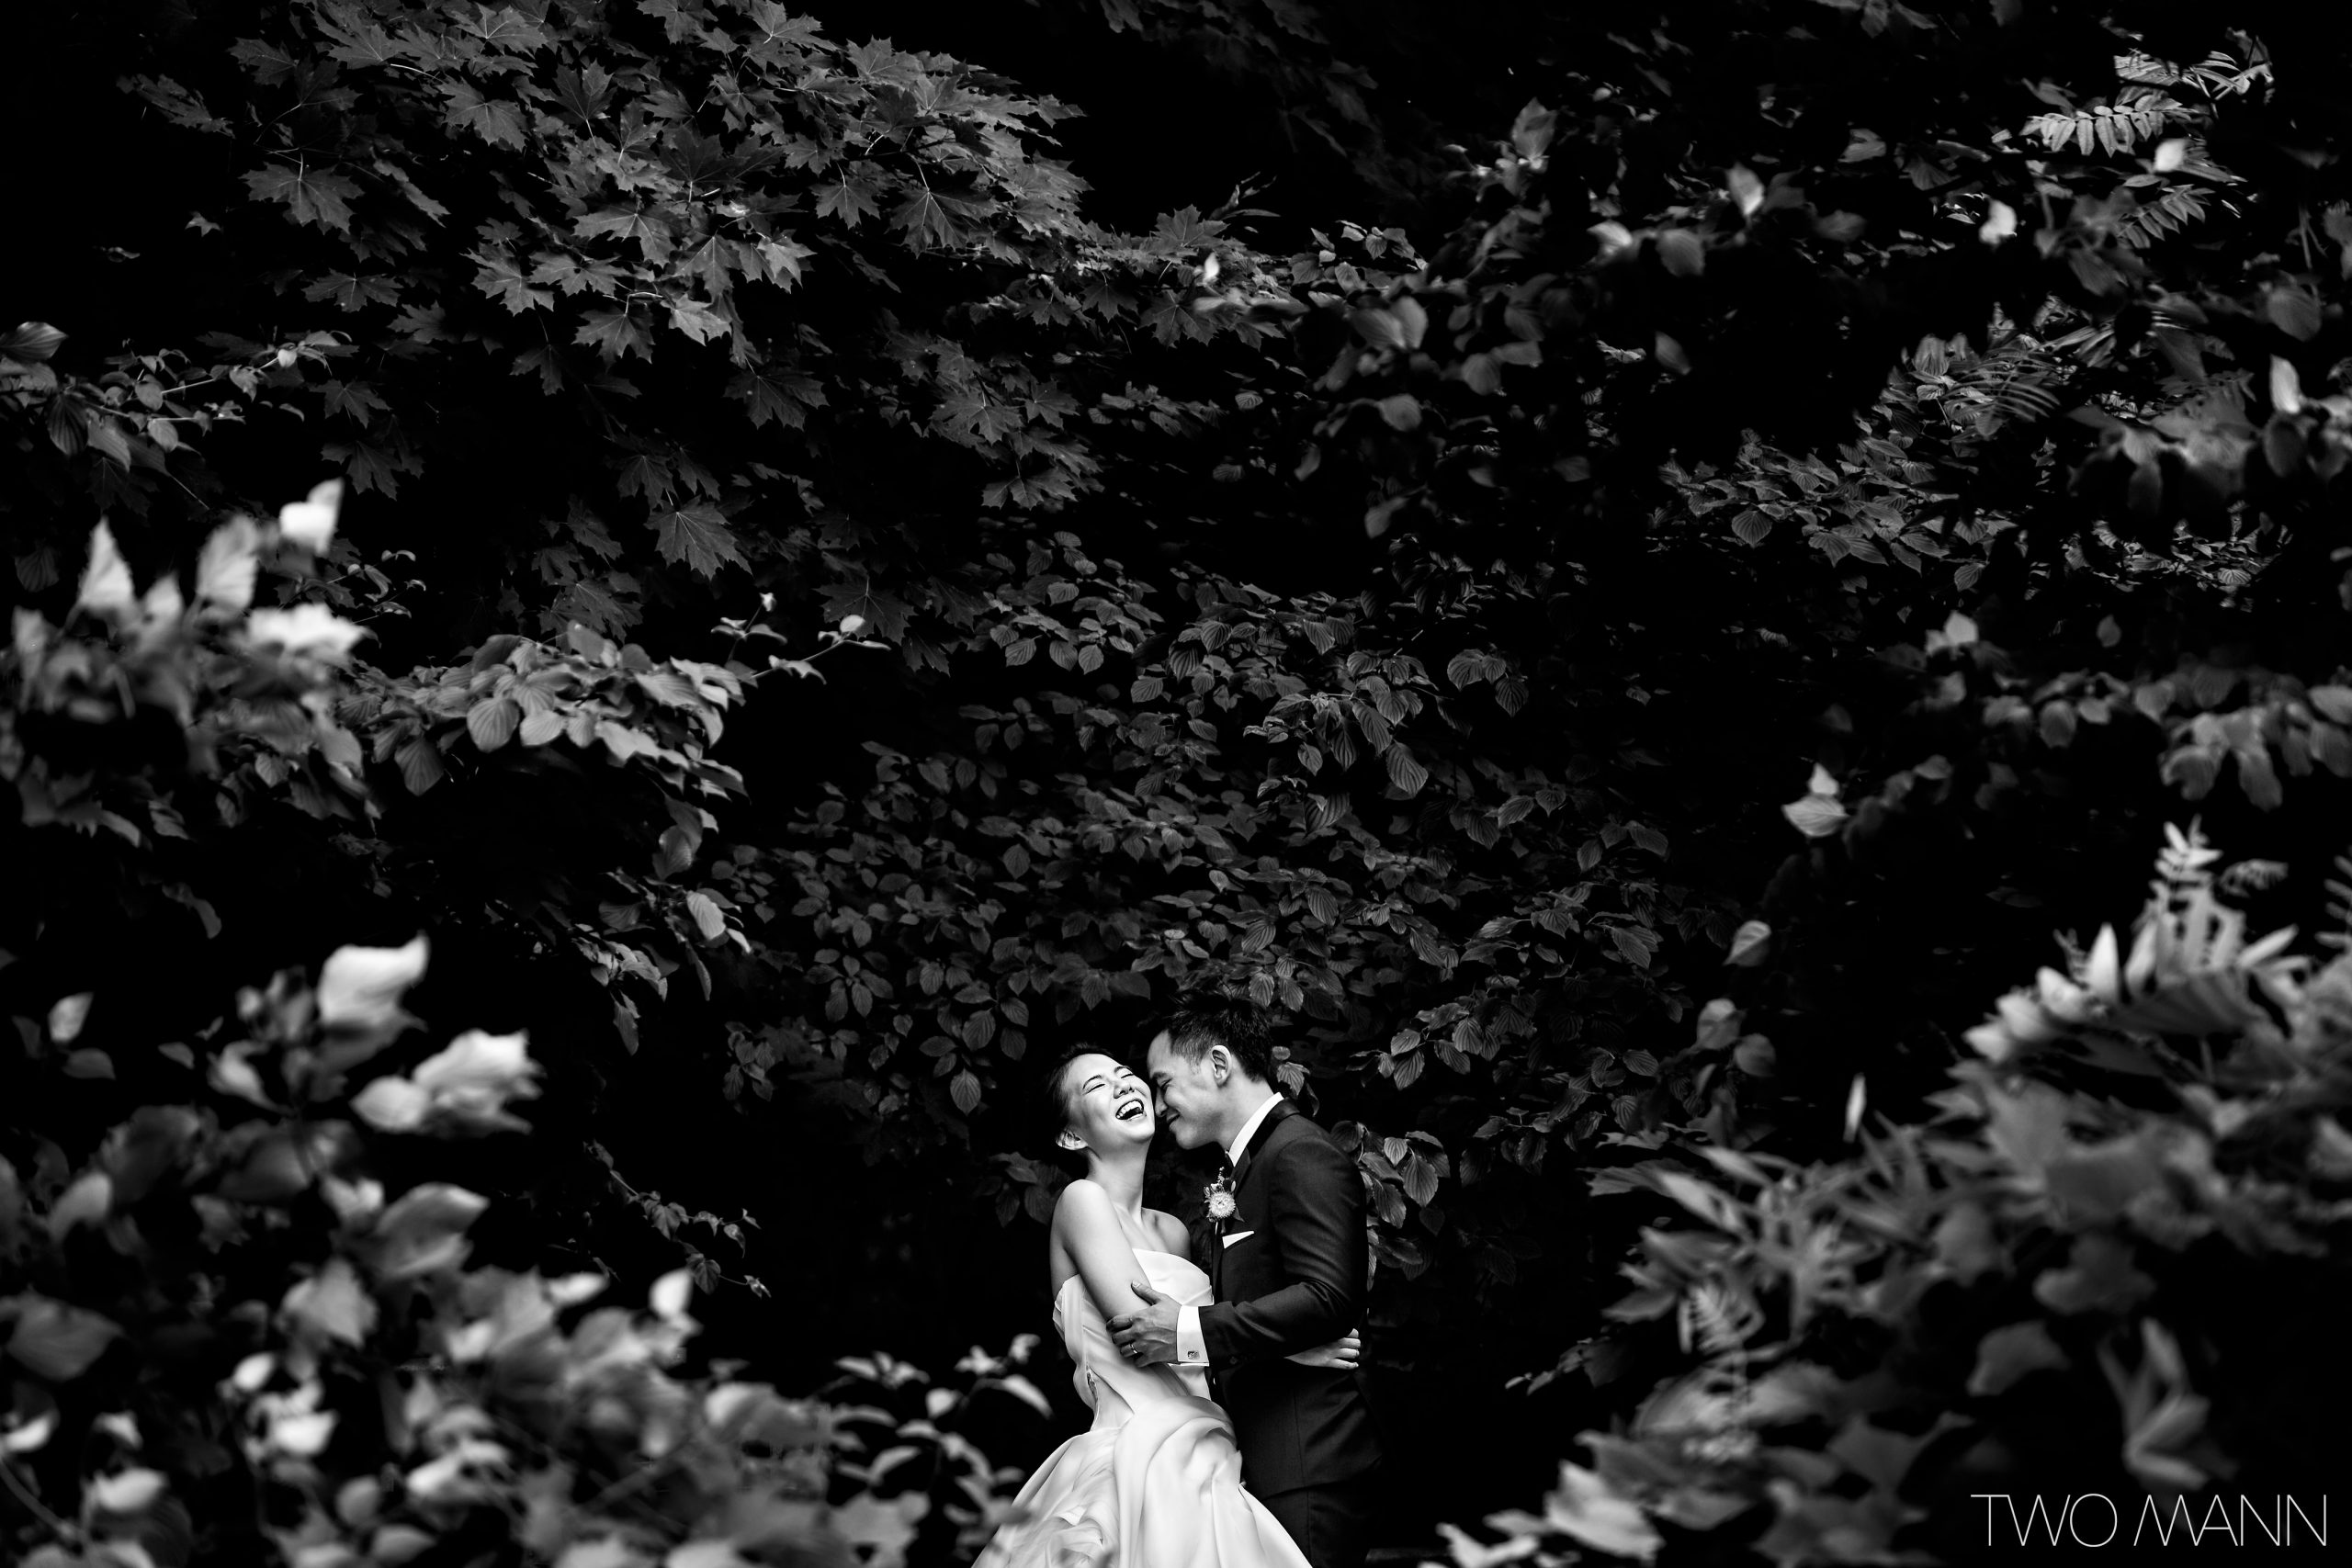 black and white wedding portrait with bride and groom surrounded by trees